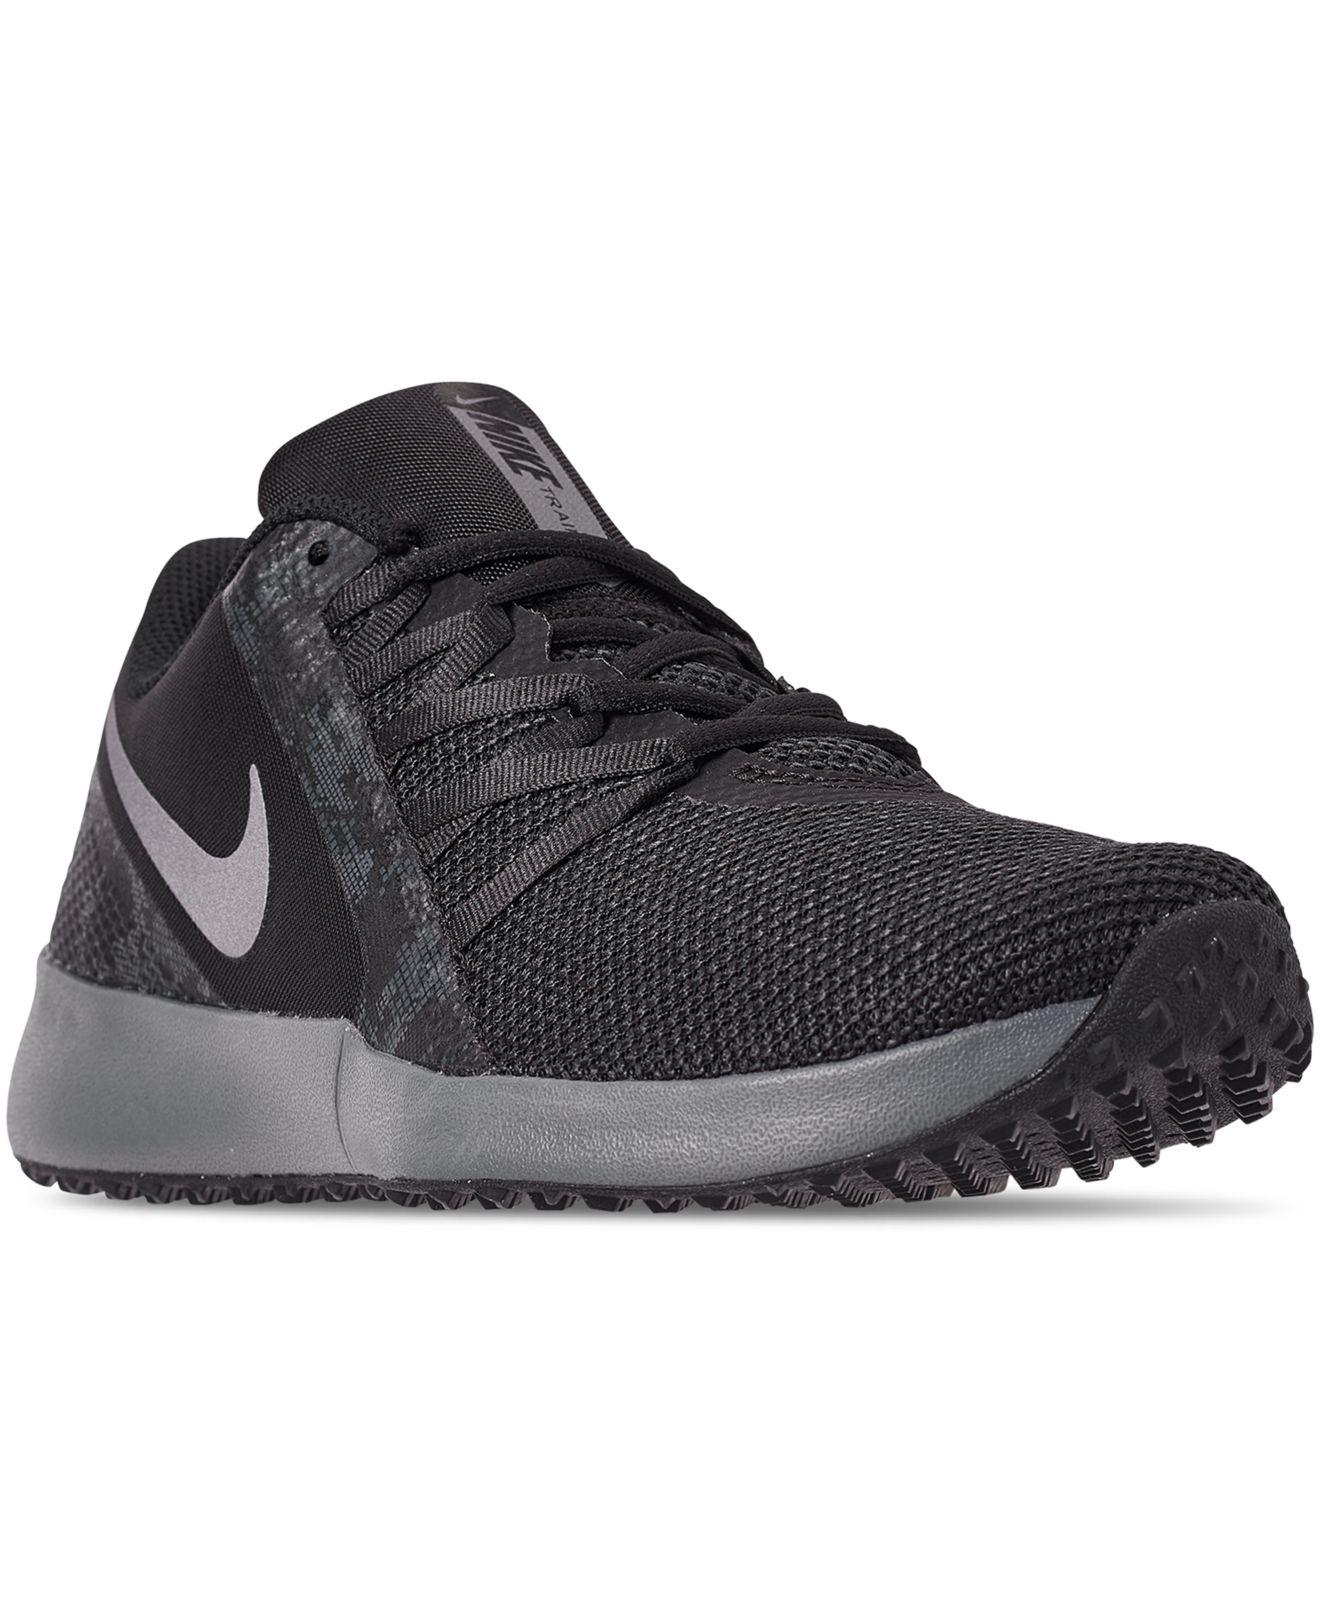 4790f9492e3 nike -BLACKMTLC-COOL-GREY-ANTH-Varsity-Compete-Camo-Training-Sneakers-From-Finish-Line.jpeg